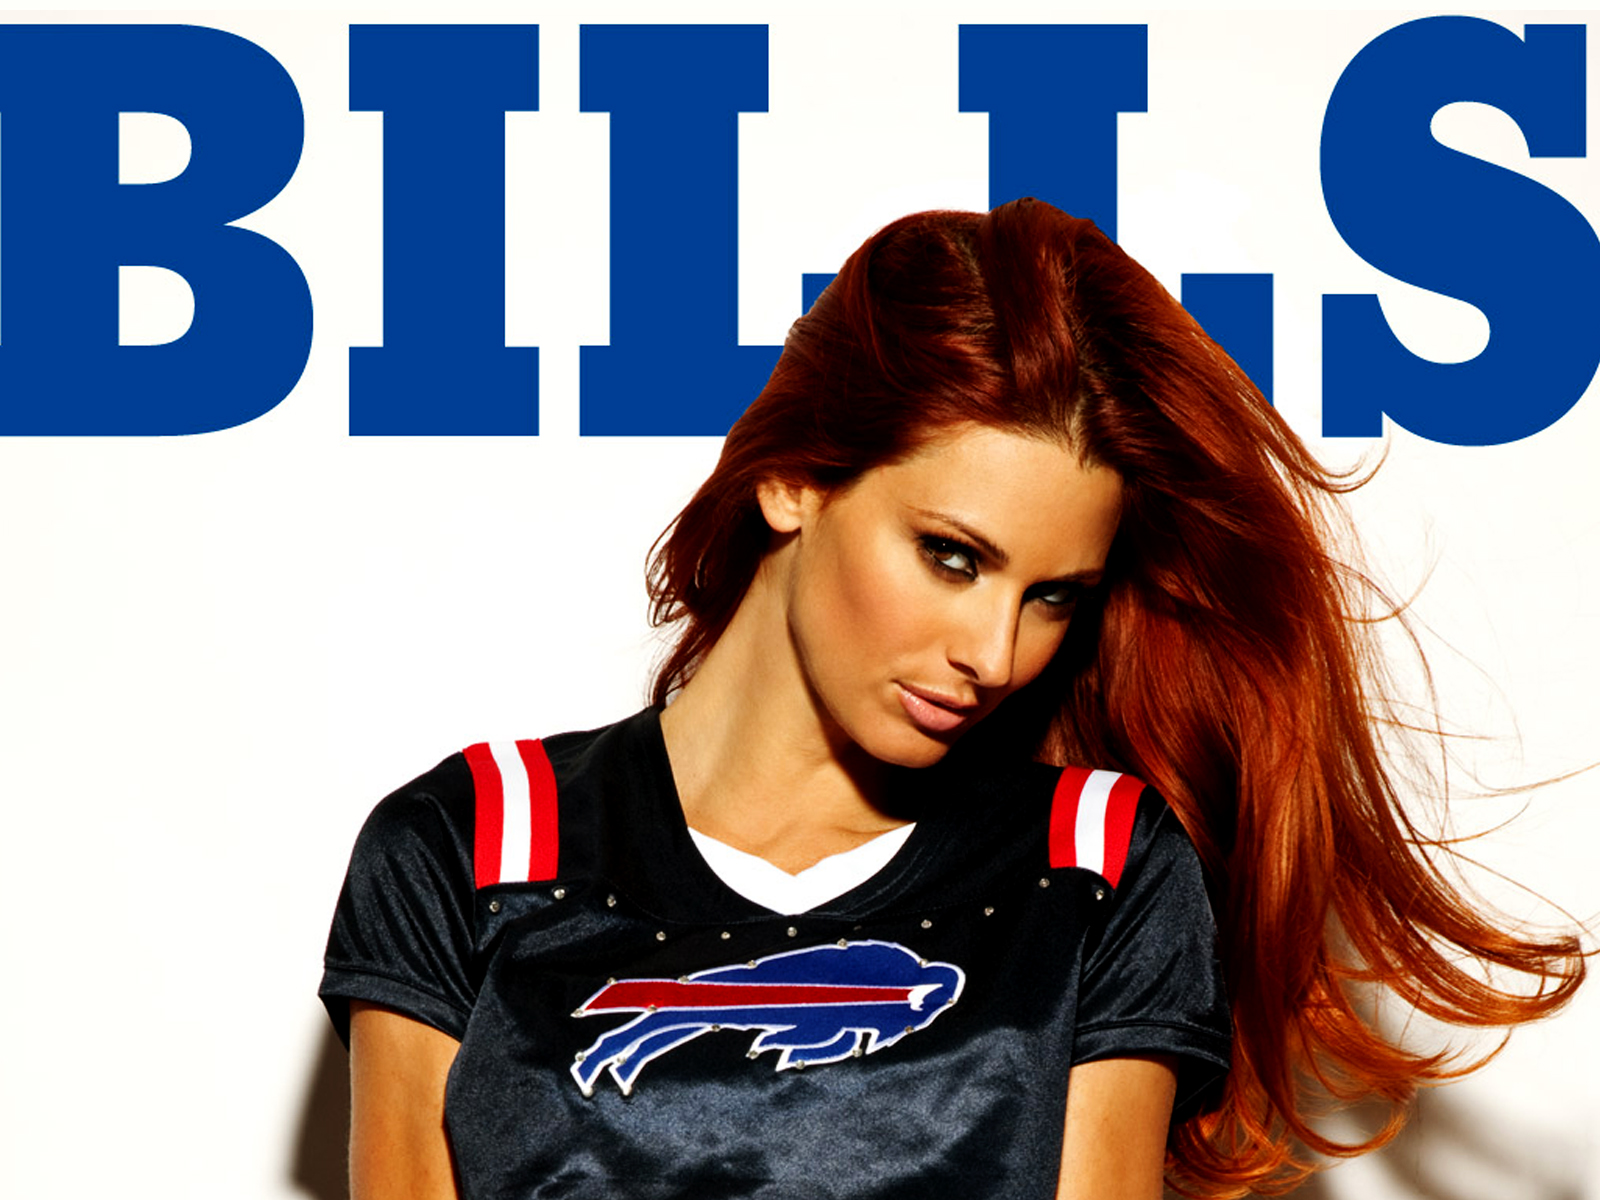 http://1.bp.blogspot.com/-_cgP6p35DaY/UH5pR1kIFtI/AAAAAAAAFfo/-ORJwCTseMQ/s1600/Buffalo-Bills-Nfl-Girl-HD-Wallpaper_Vvallpaper.Net.jpg